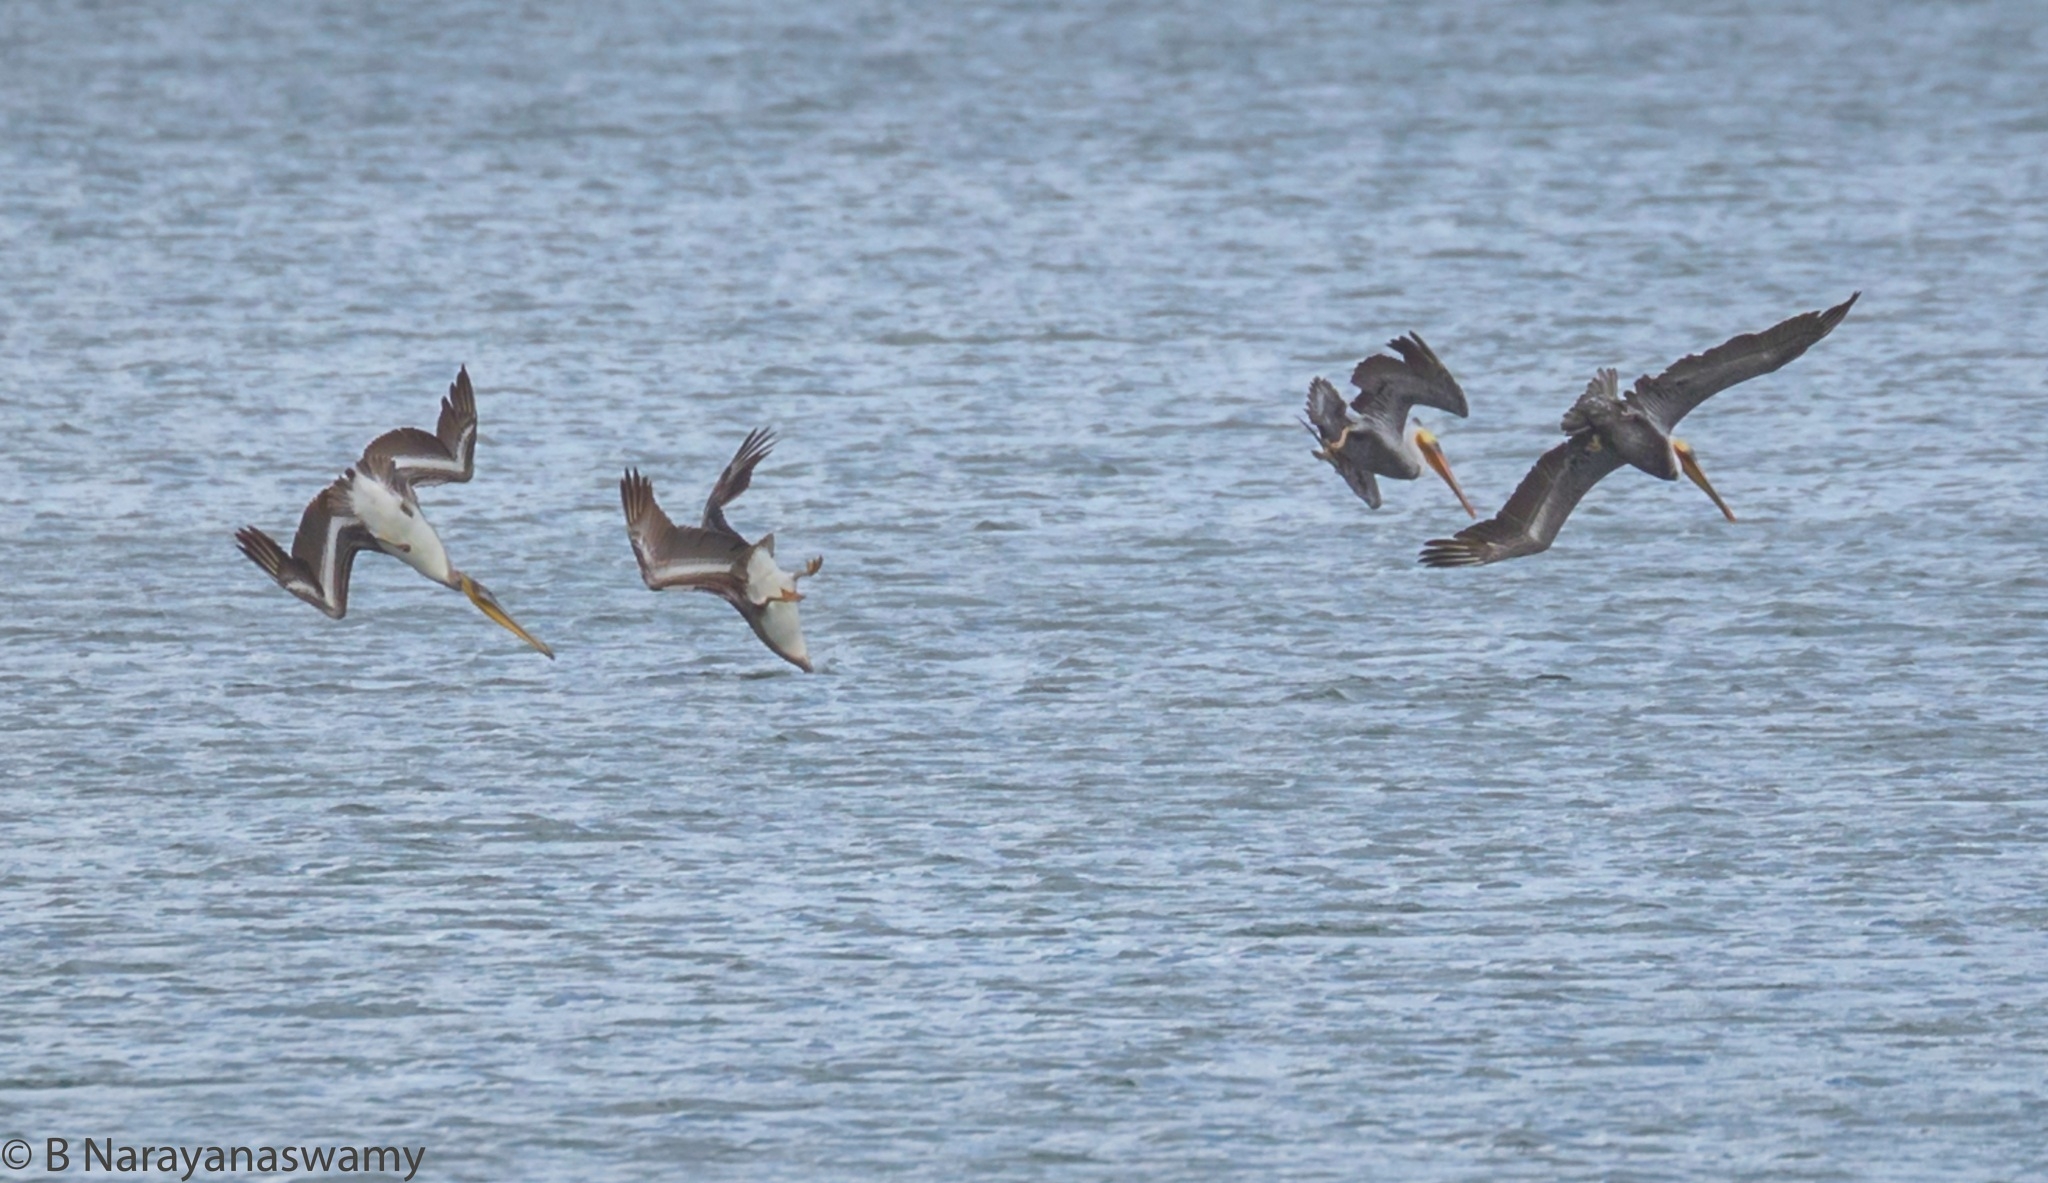 Synchronised Dive by 4 brown Pelicans of Americas by B Narayanaswamy